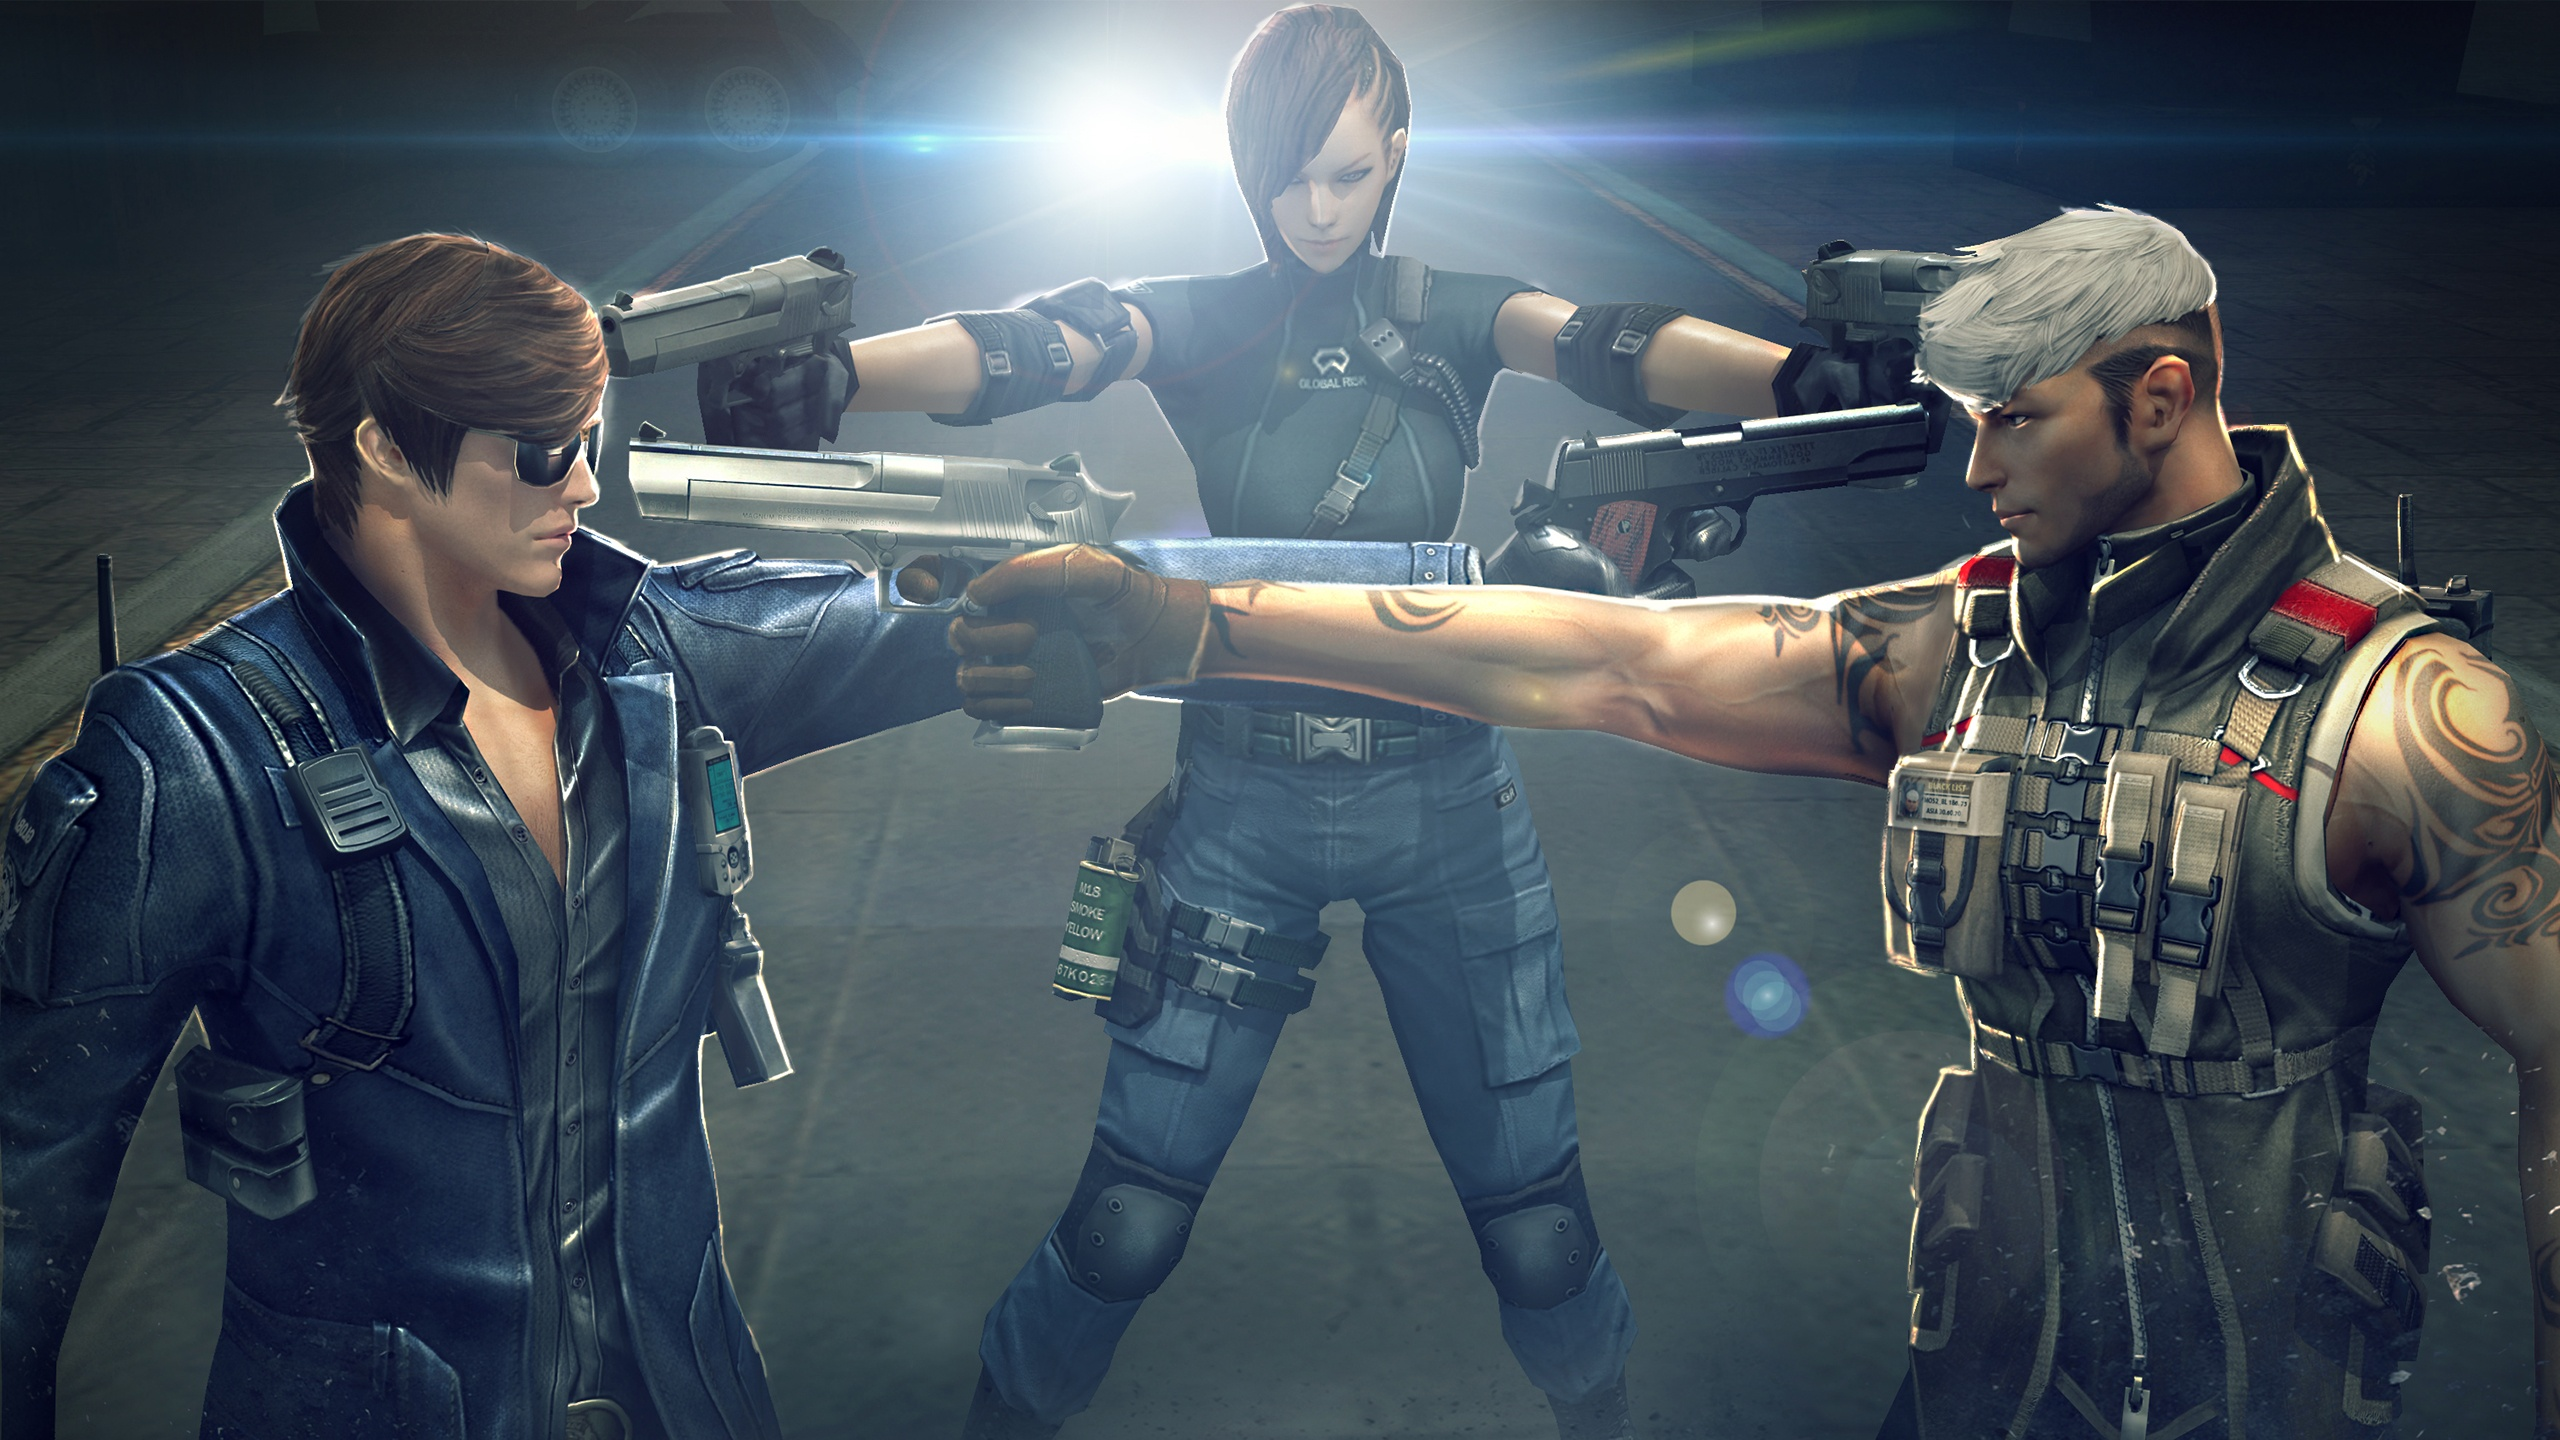 Cross Fire Free For All Wallpapers 2560x1440 931393